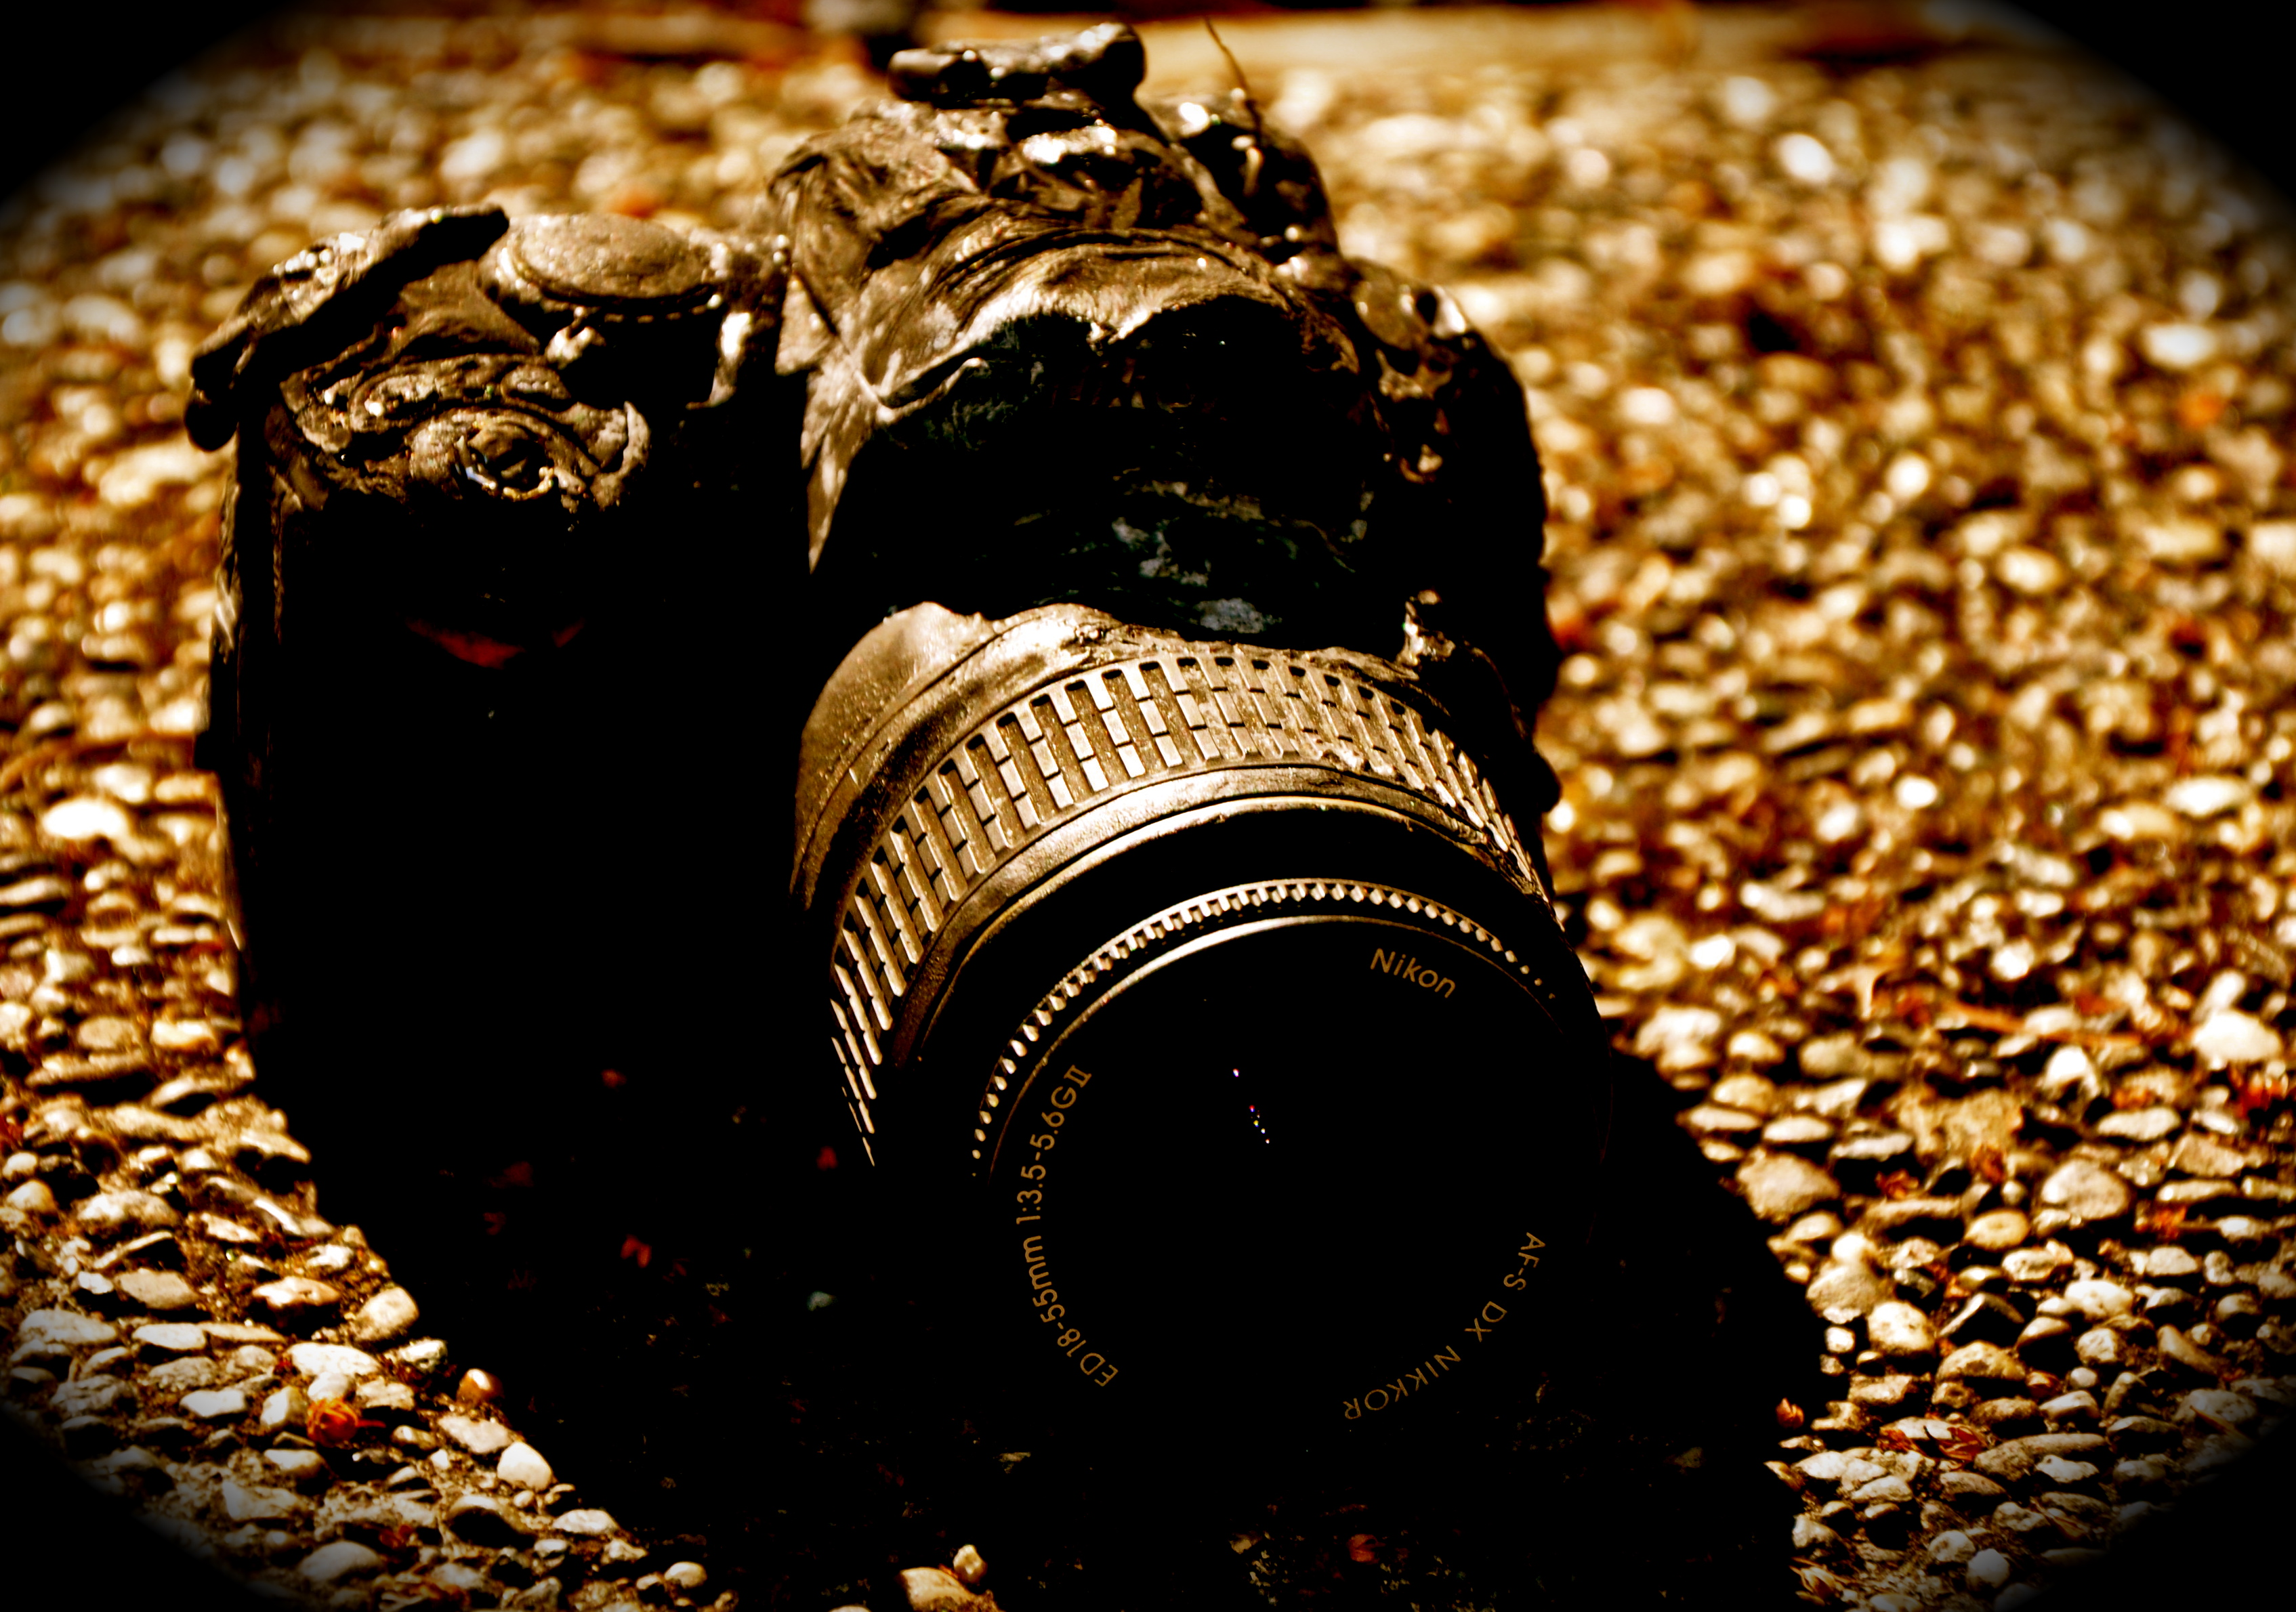 My Camera Post-Fire (the memory card with ~ 800 pics survived) at the Burn House. Photo by William Bass.